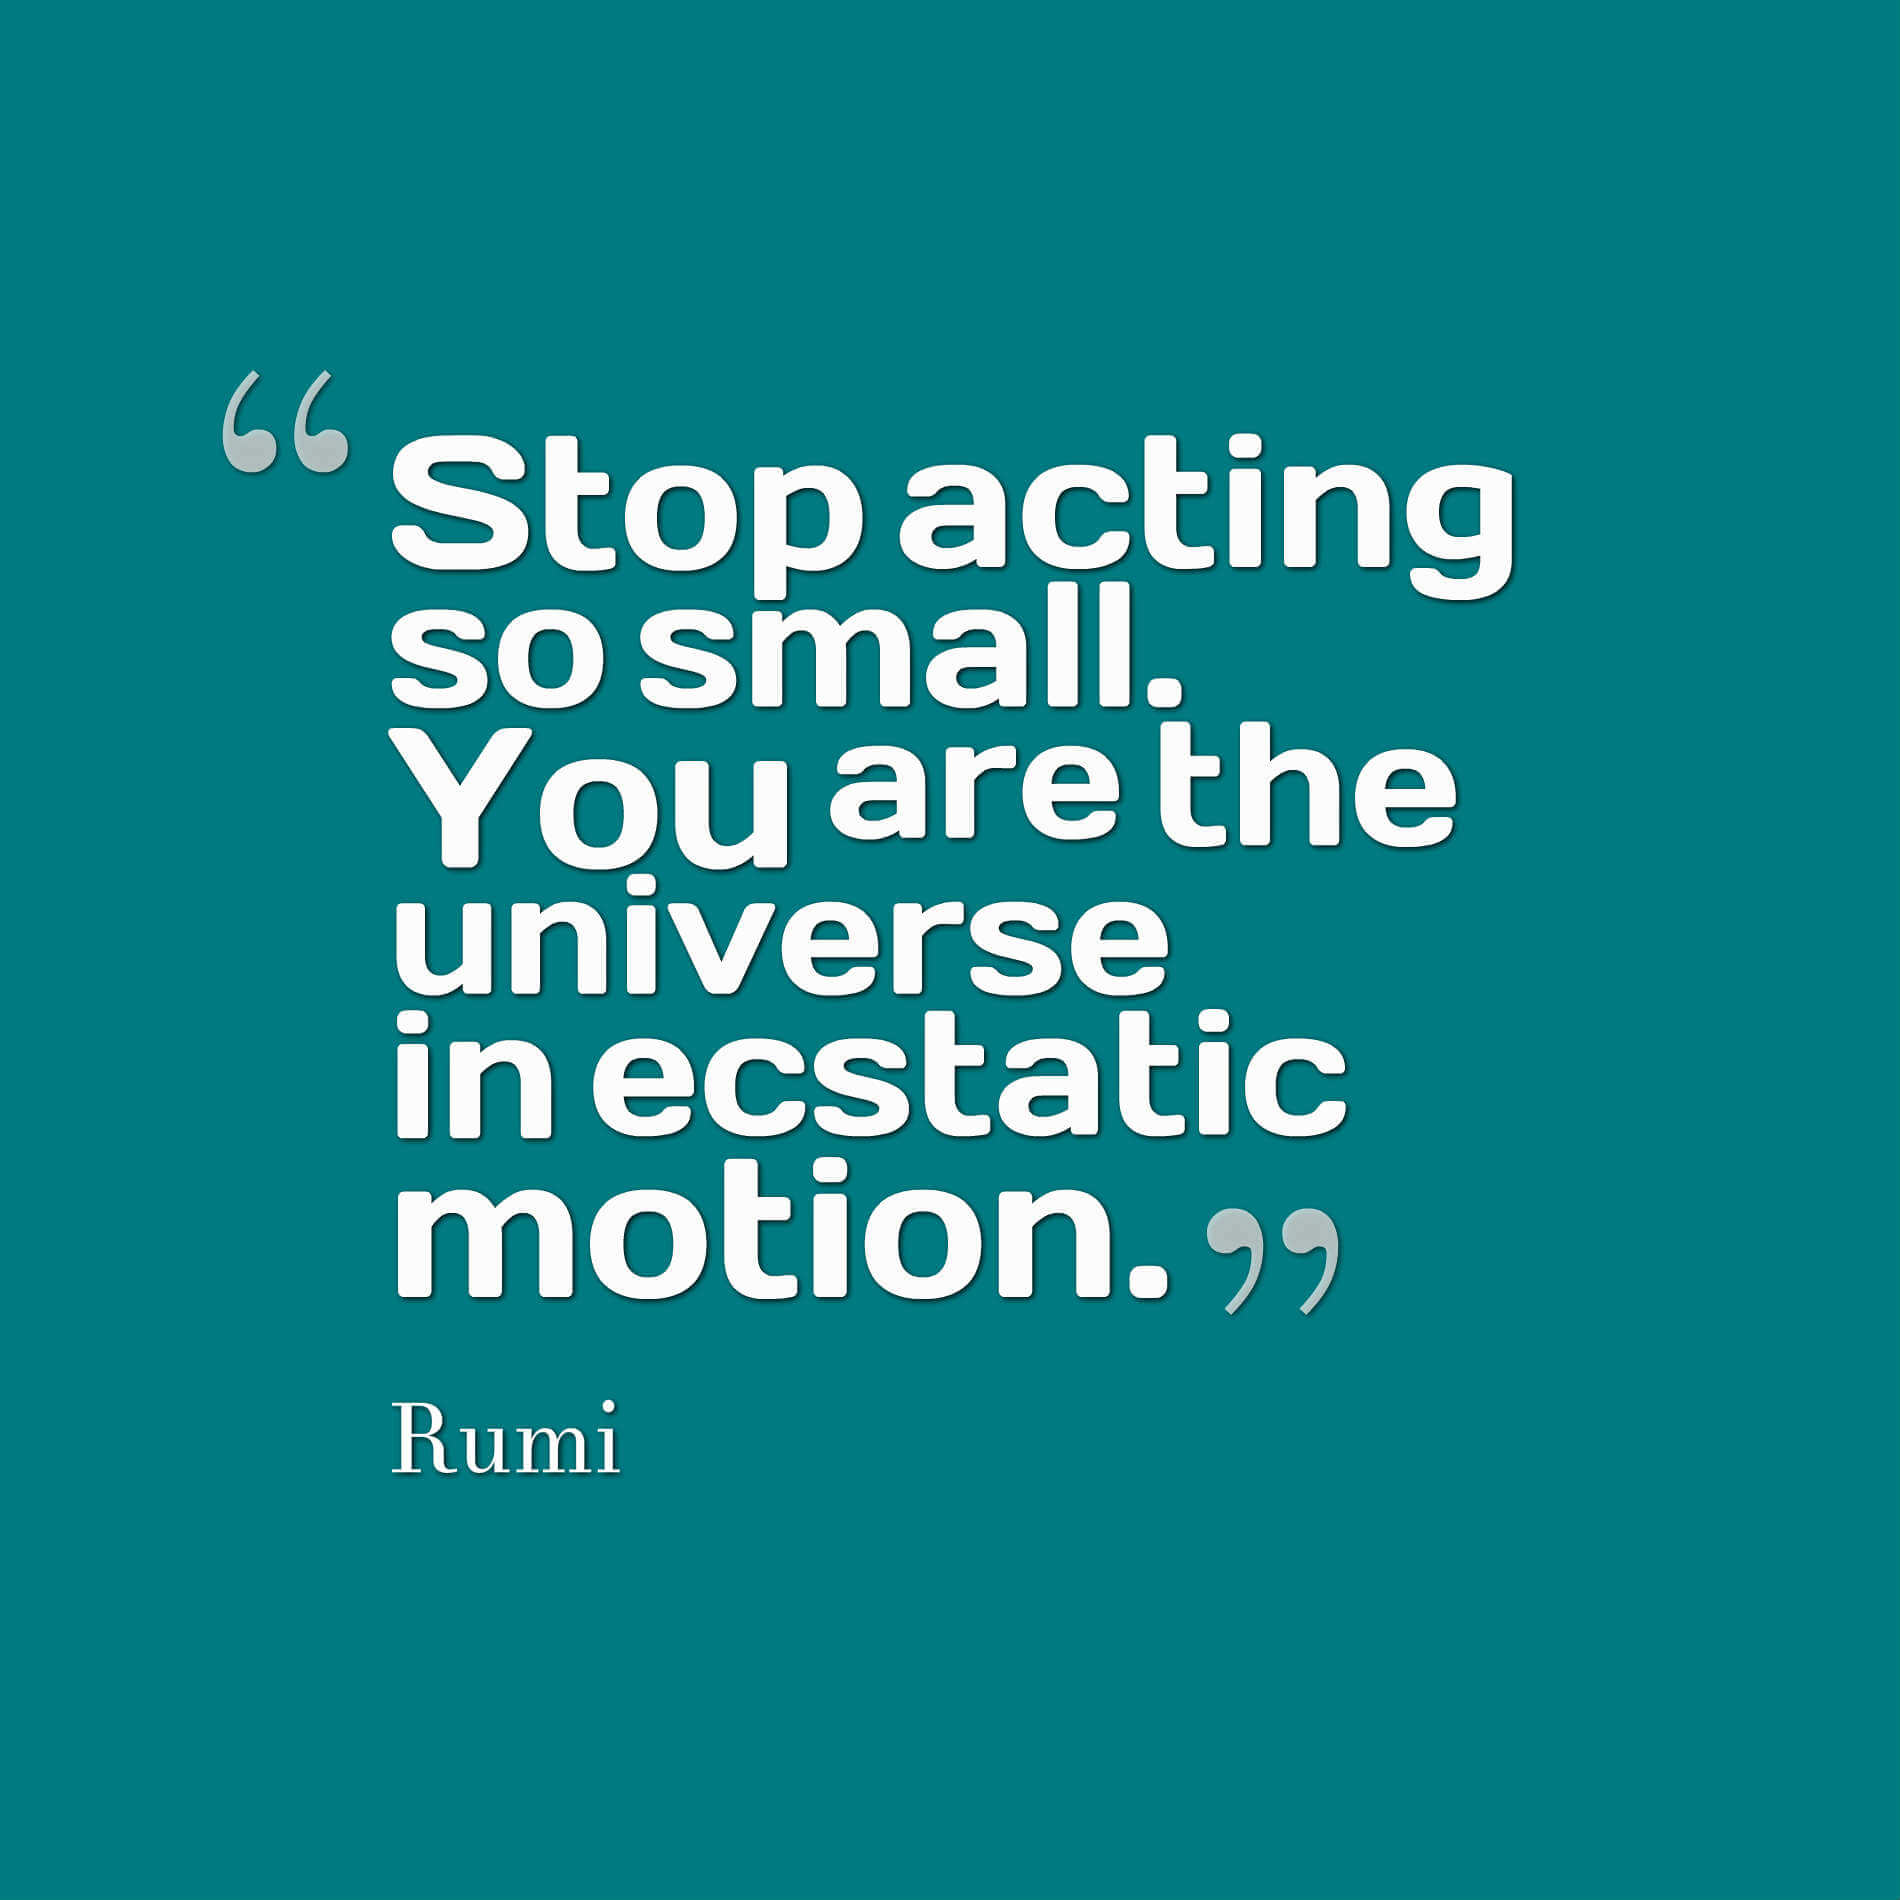 Stop acting so small. You are the universe in ecstatic motion. - rumi quotes